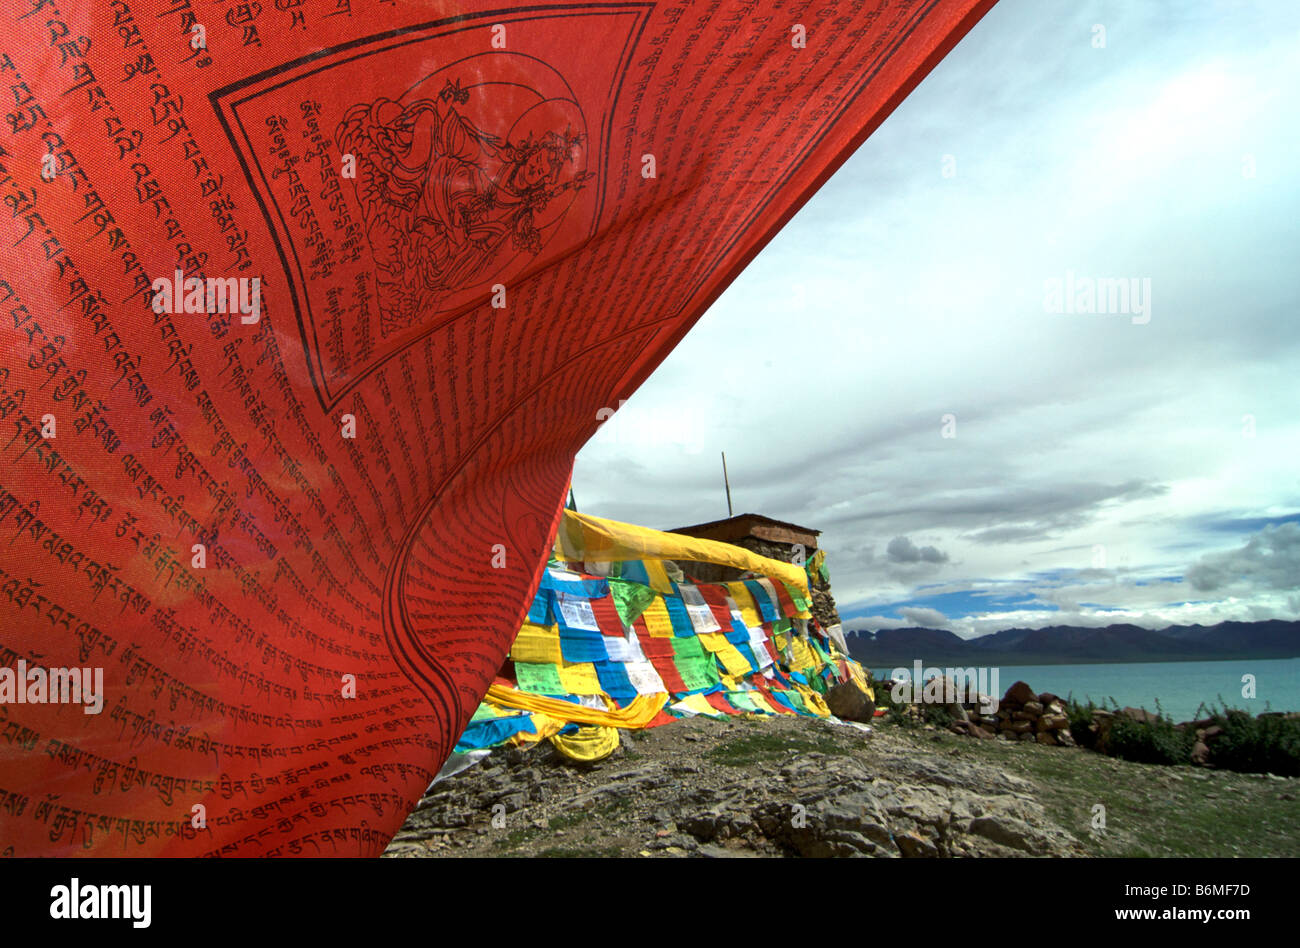 Red prayer flag flapping in the wind besides Namtso lake, Tibet - Stock Image